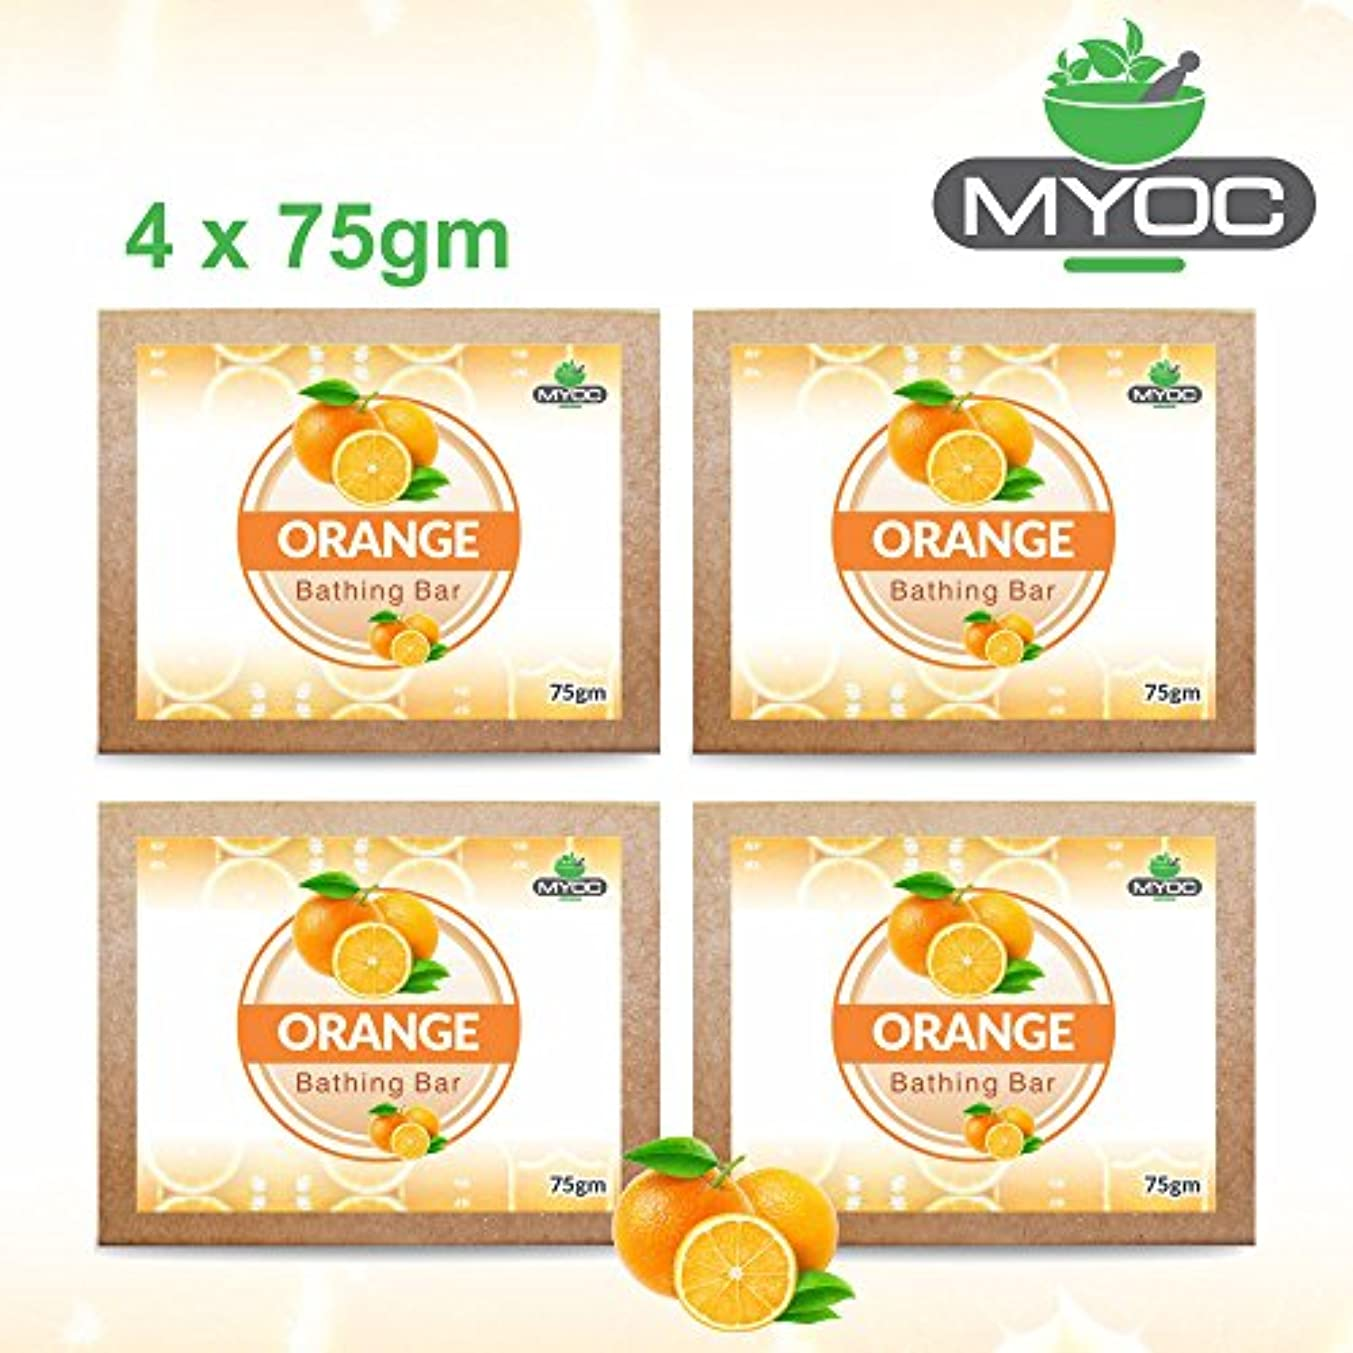 従来のベギン急勾配のOrange soap for dull looking skin. Combats bacteria, rejuvenates skin, fights blemishes and unclog pores 75gm...